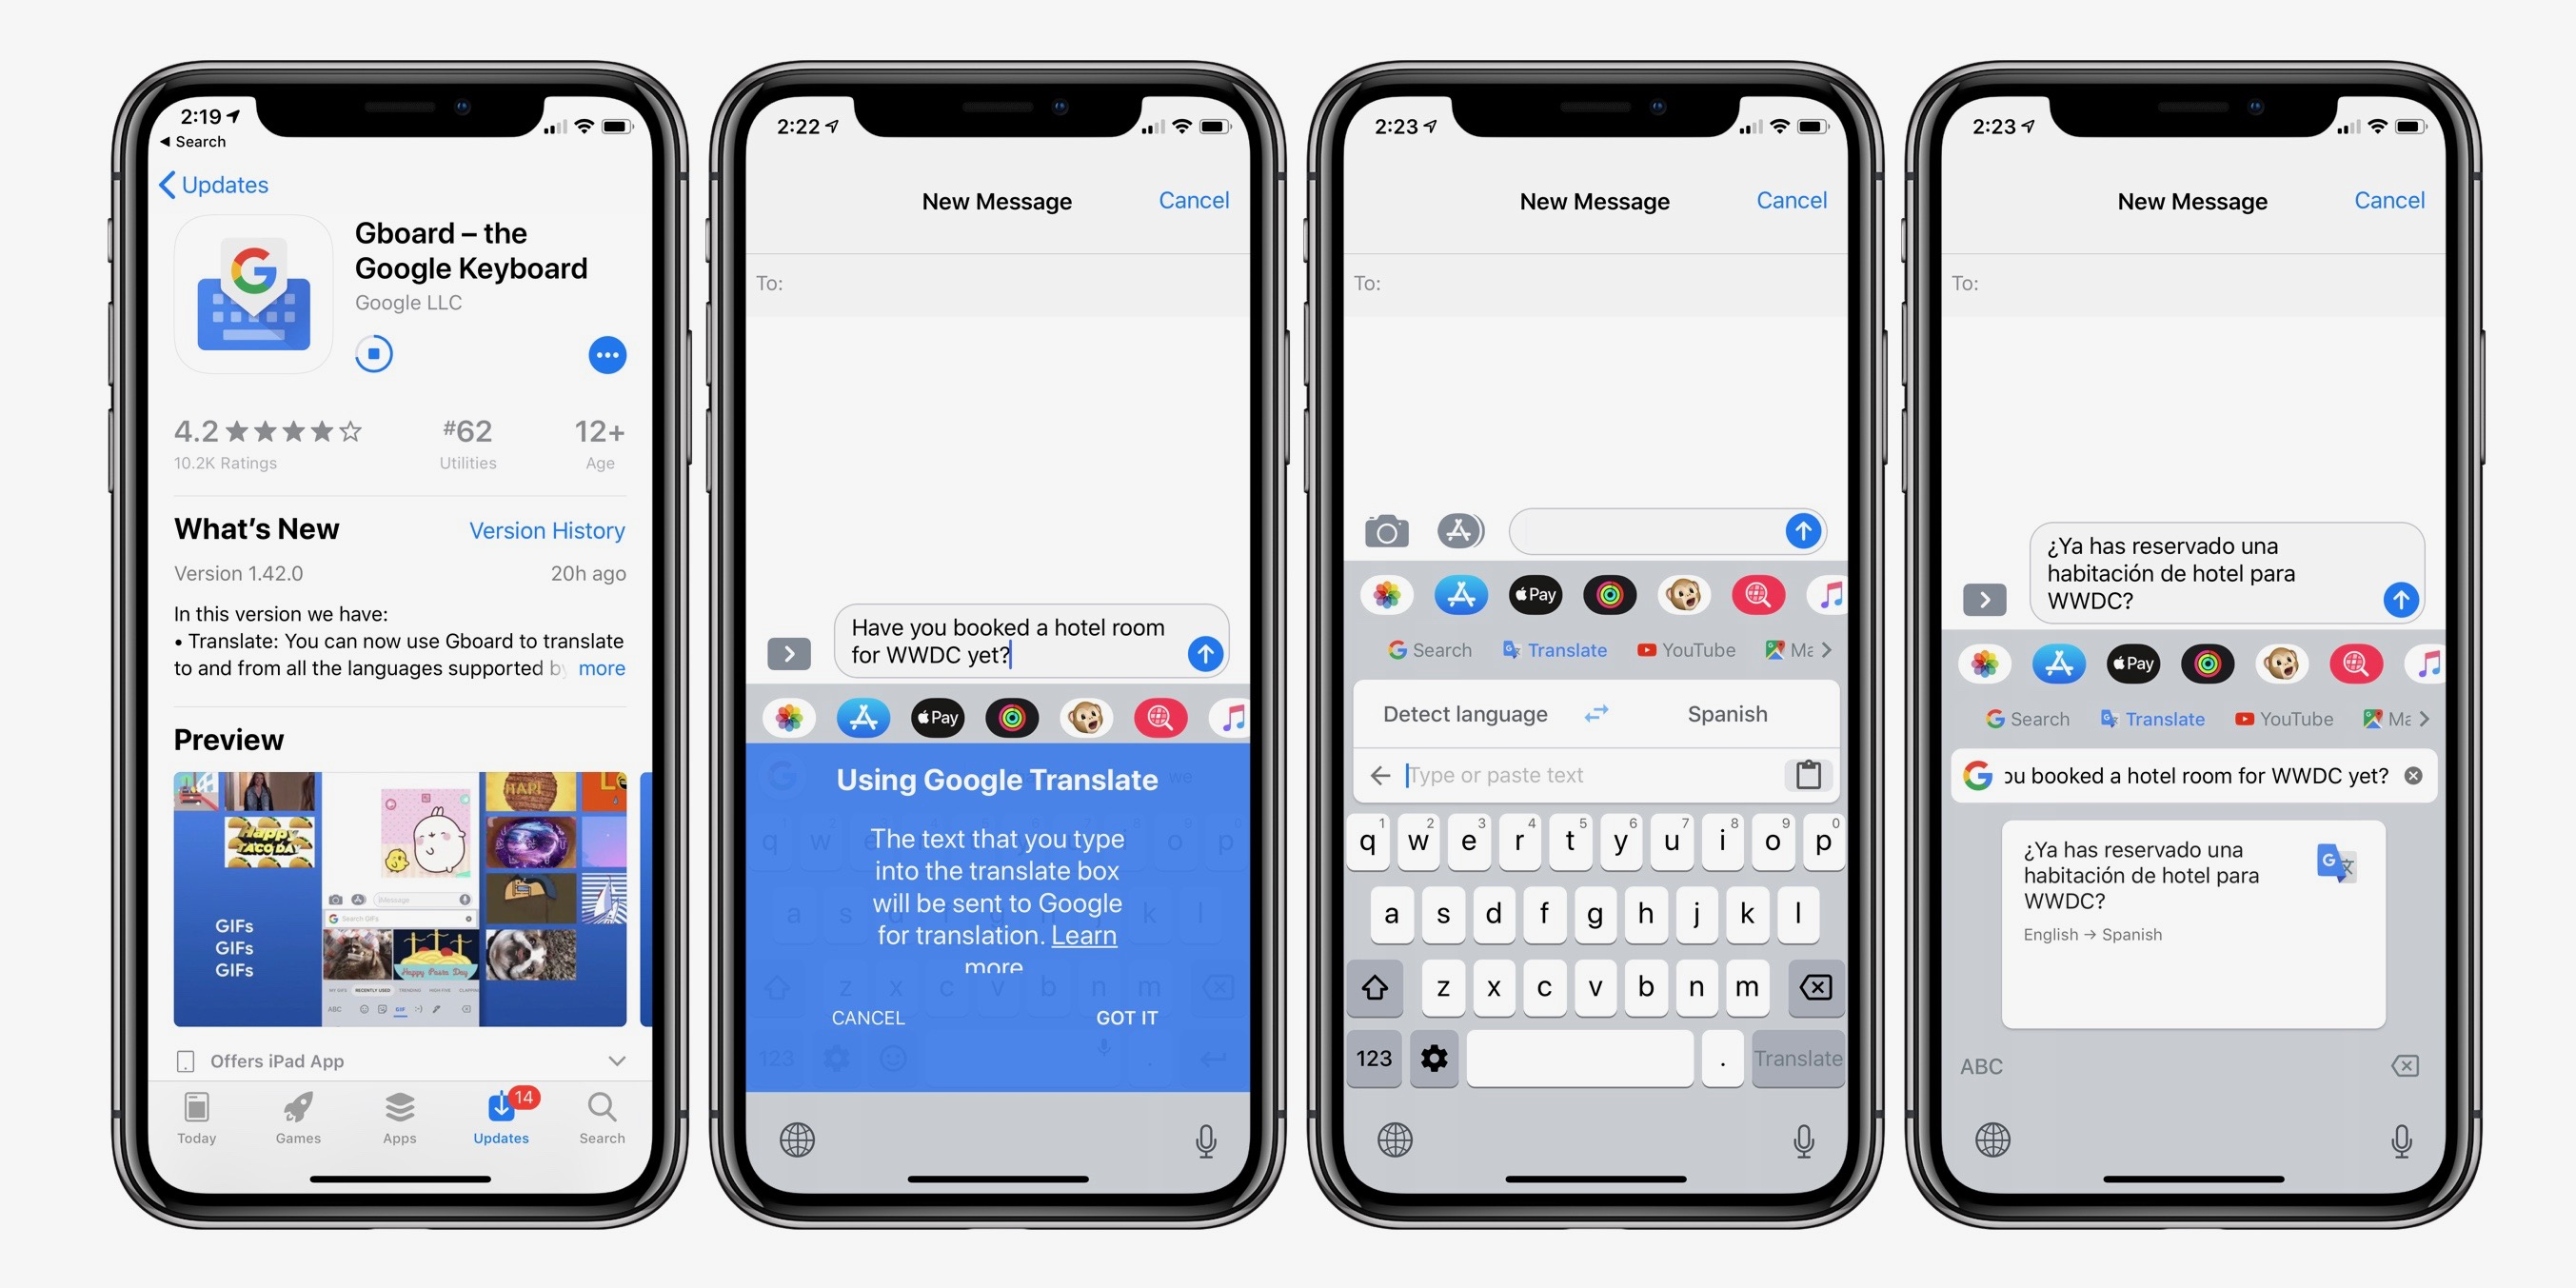 Gboard iOS keyboard update brings handy translate feature to iPhone and iPad